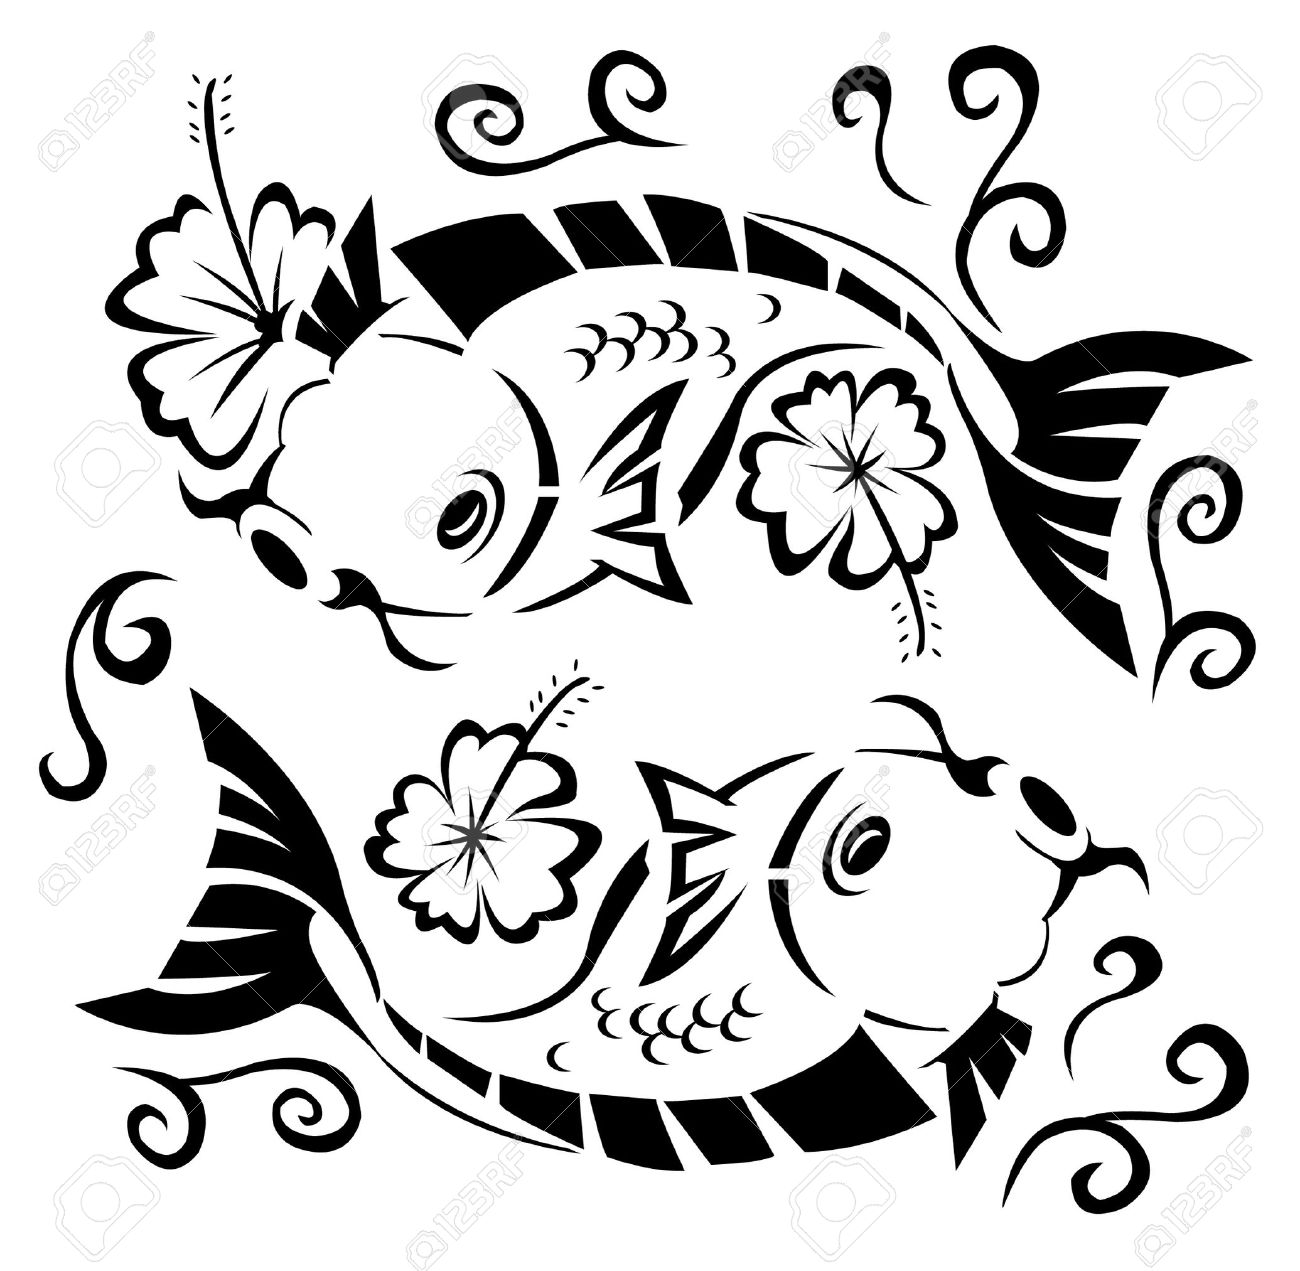 1300x1271 Japanese Koi Fish Clipart